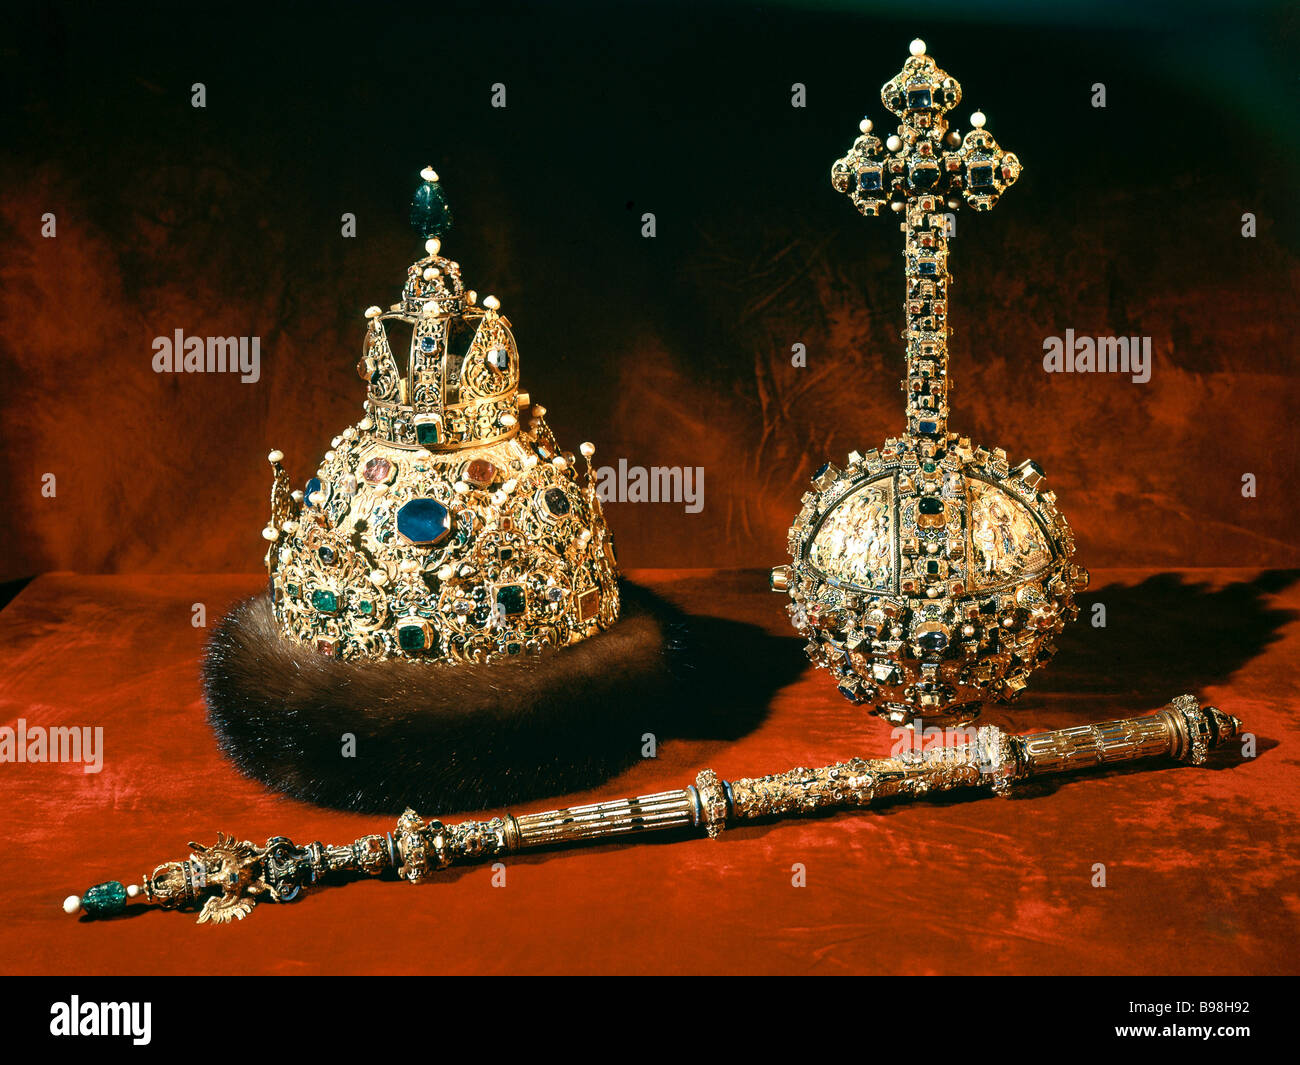 The regalia crown scepter and orb of Tsar Mikhail Romanov 1627 28 Exhibited at the Kremlin Armory - Stock Image